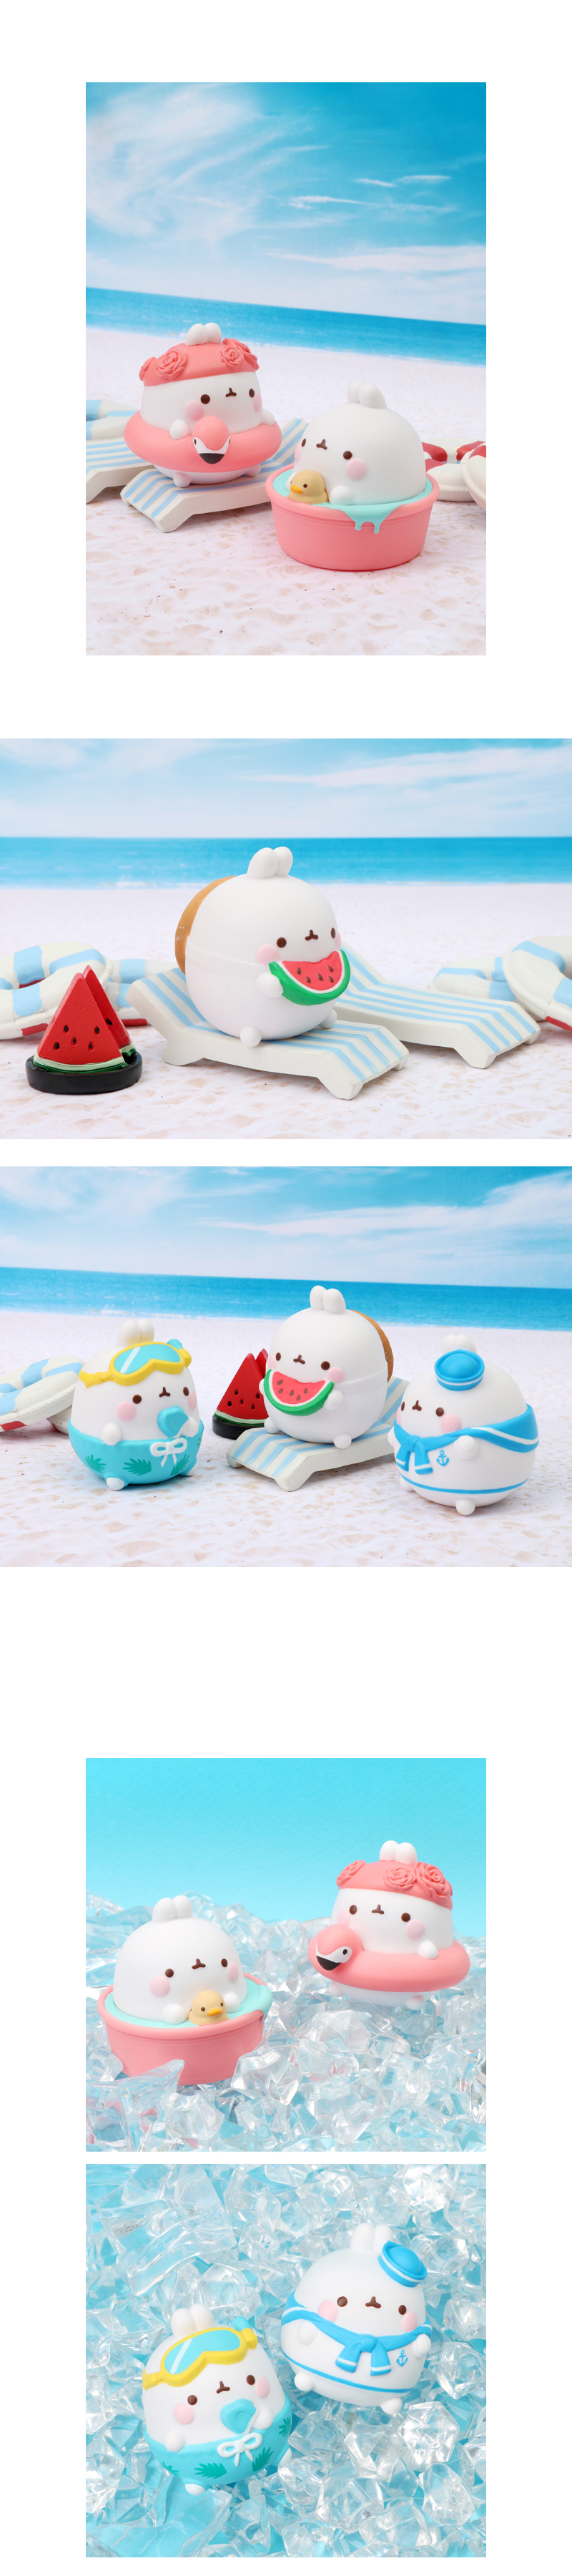 molang_figure_summer_special_02.jpg